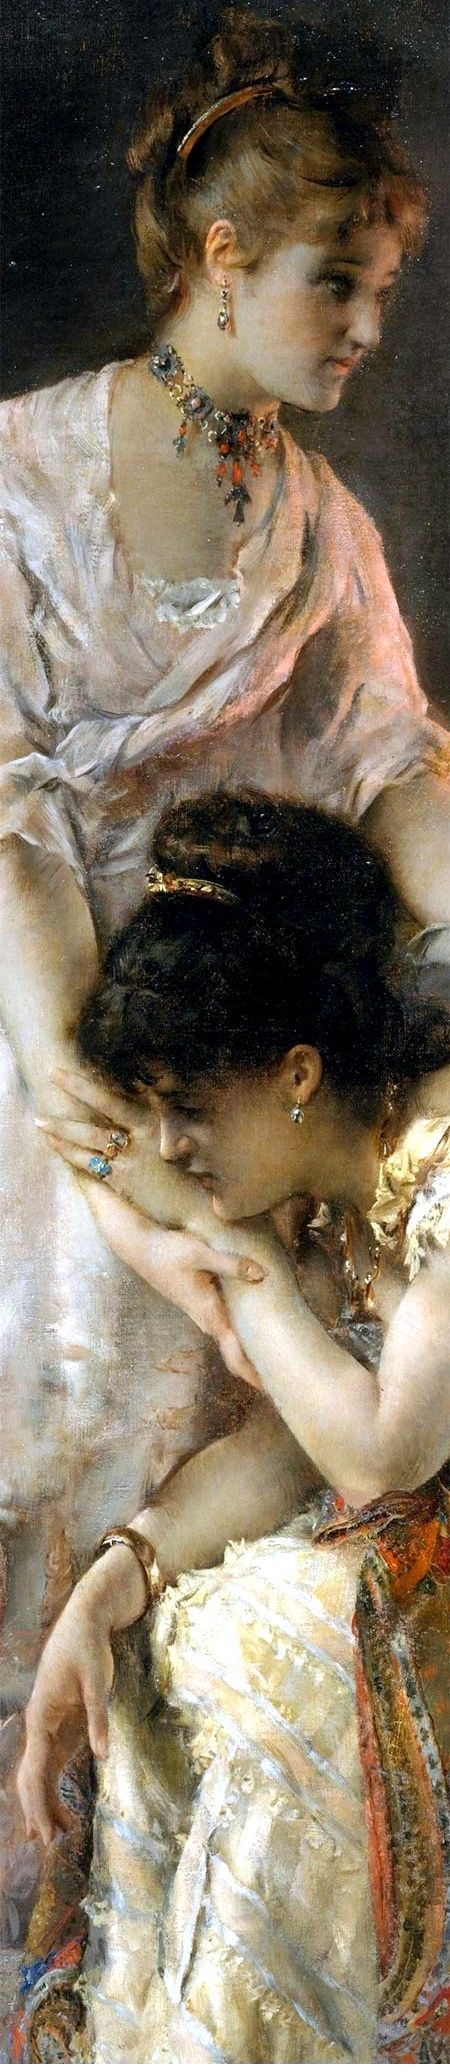 After the Ball by Alfred Stevens. @@@.....http://www.pinterest.com/solvilchez/a-r-t-~-e-m-o-t-i-o-n-s/